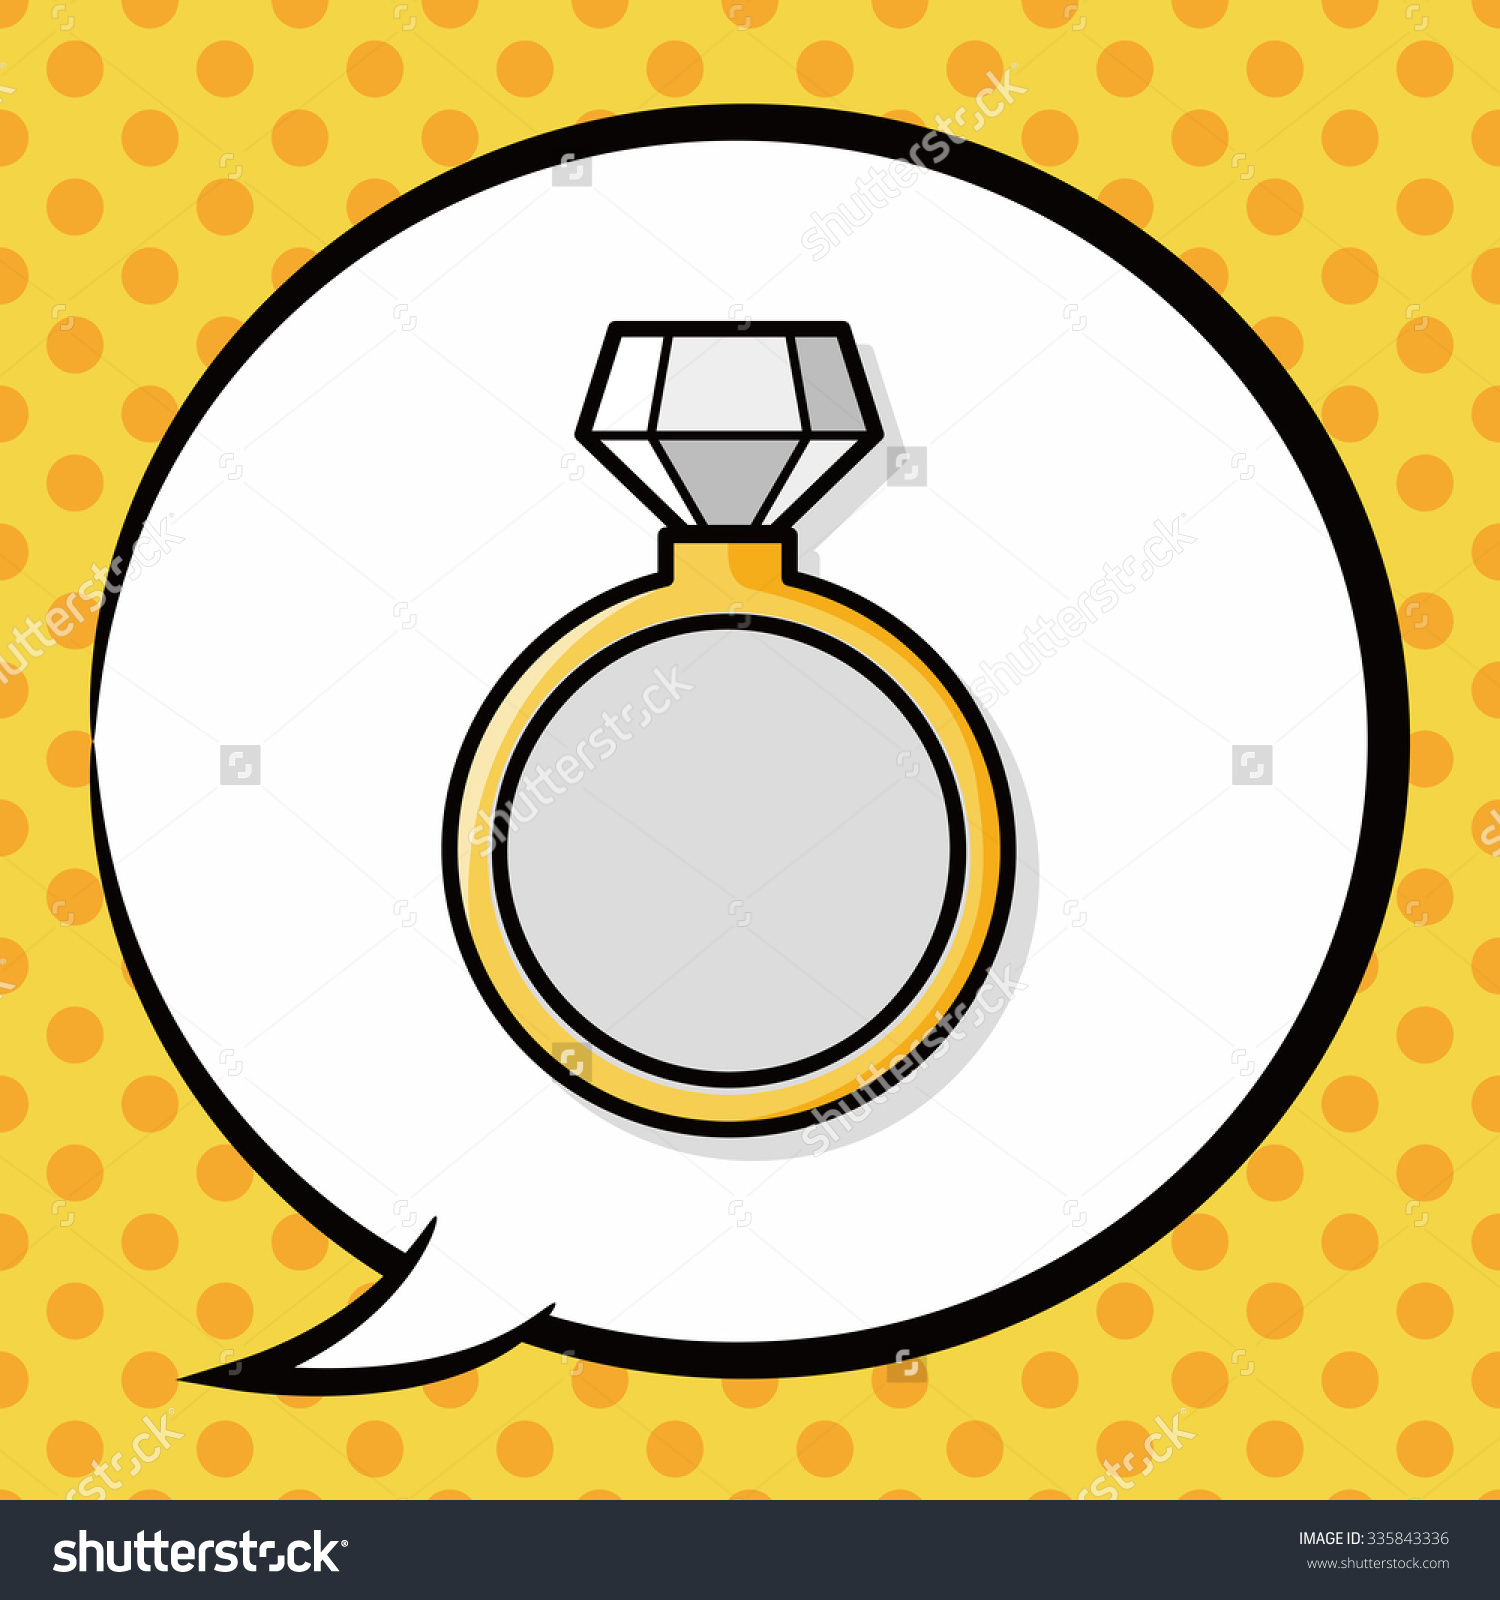 Diamond Ring Doodle, Speech Bubble Stock Vector Illustration.